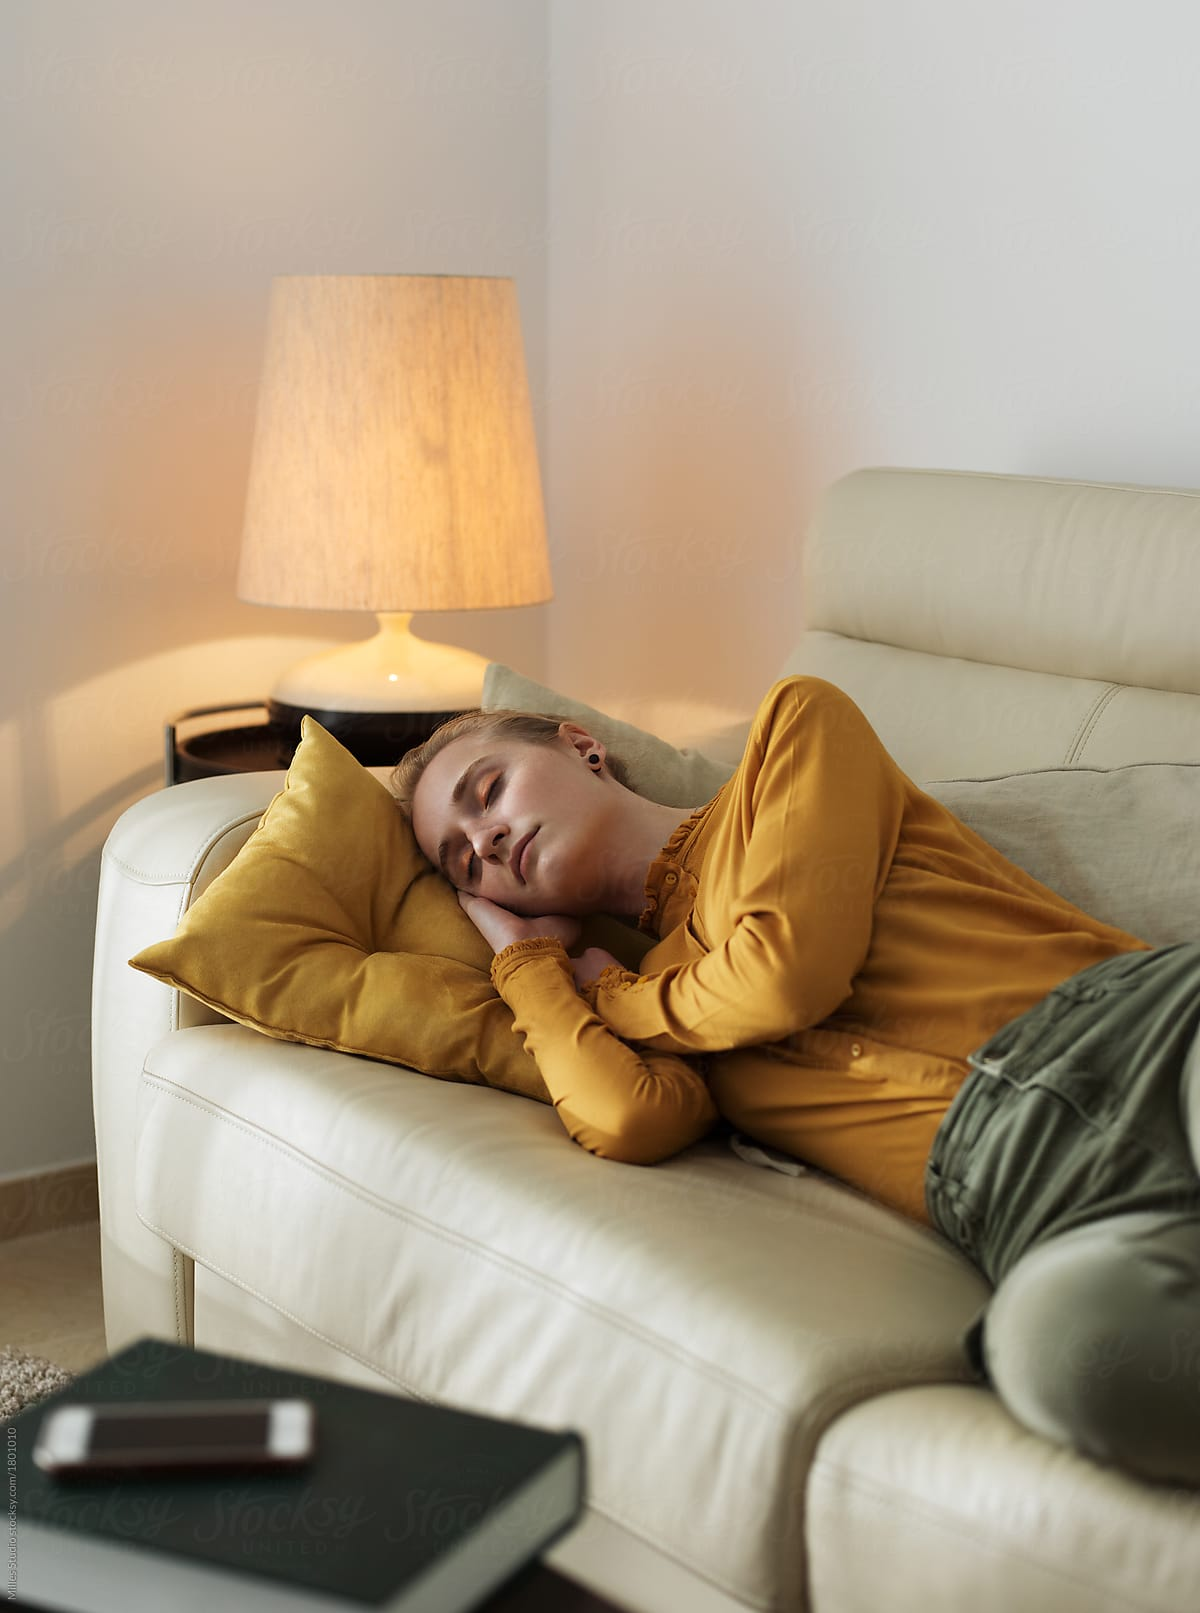 Exceptional Dreaming Young Girl Sleeping In Living Room